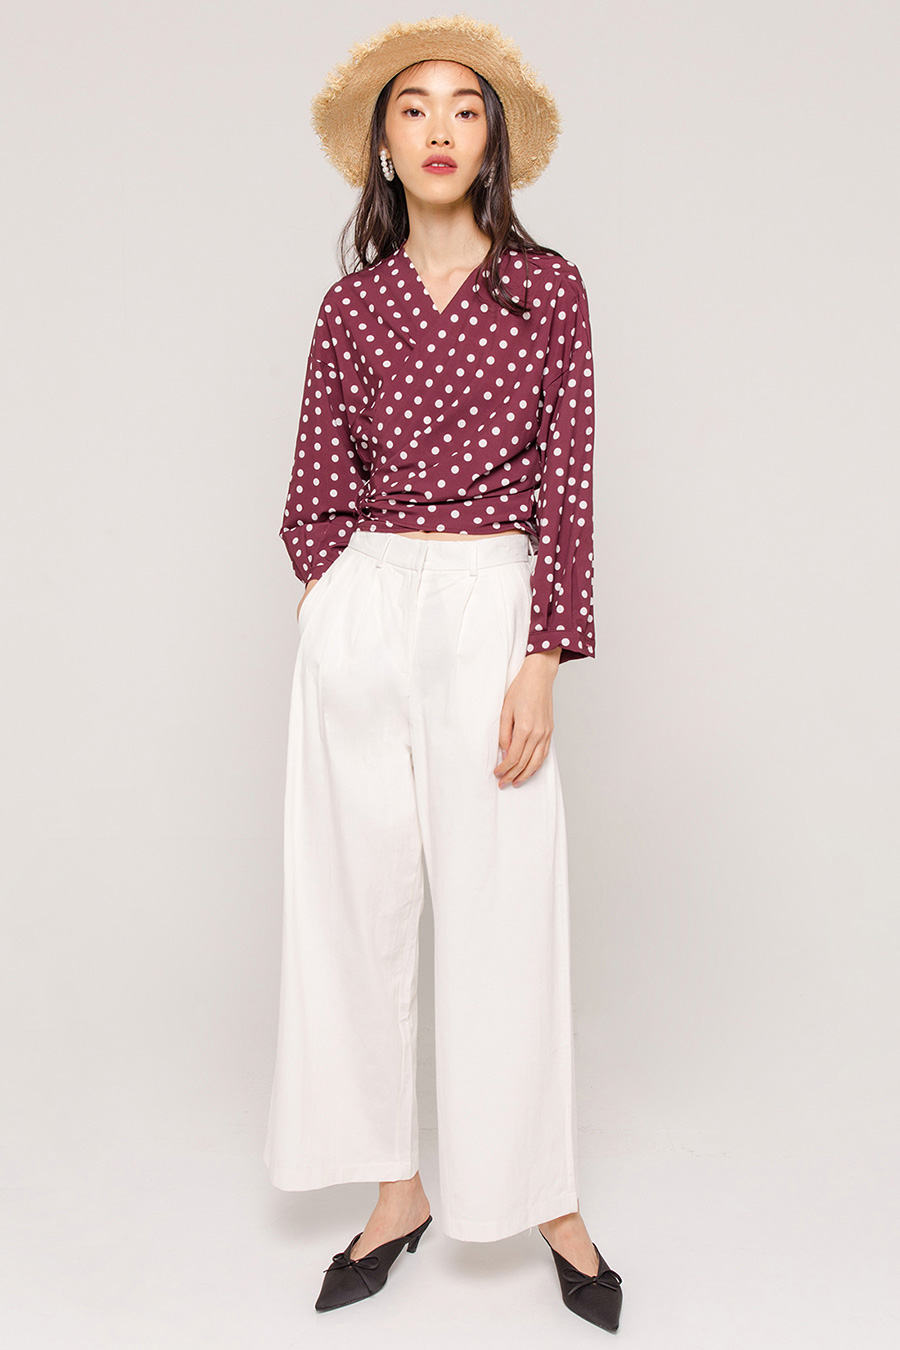 BAILEY DOTTED WRAP BLOUSE - WINE RED [QUEENDOM]